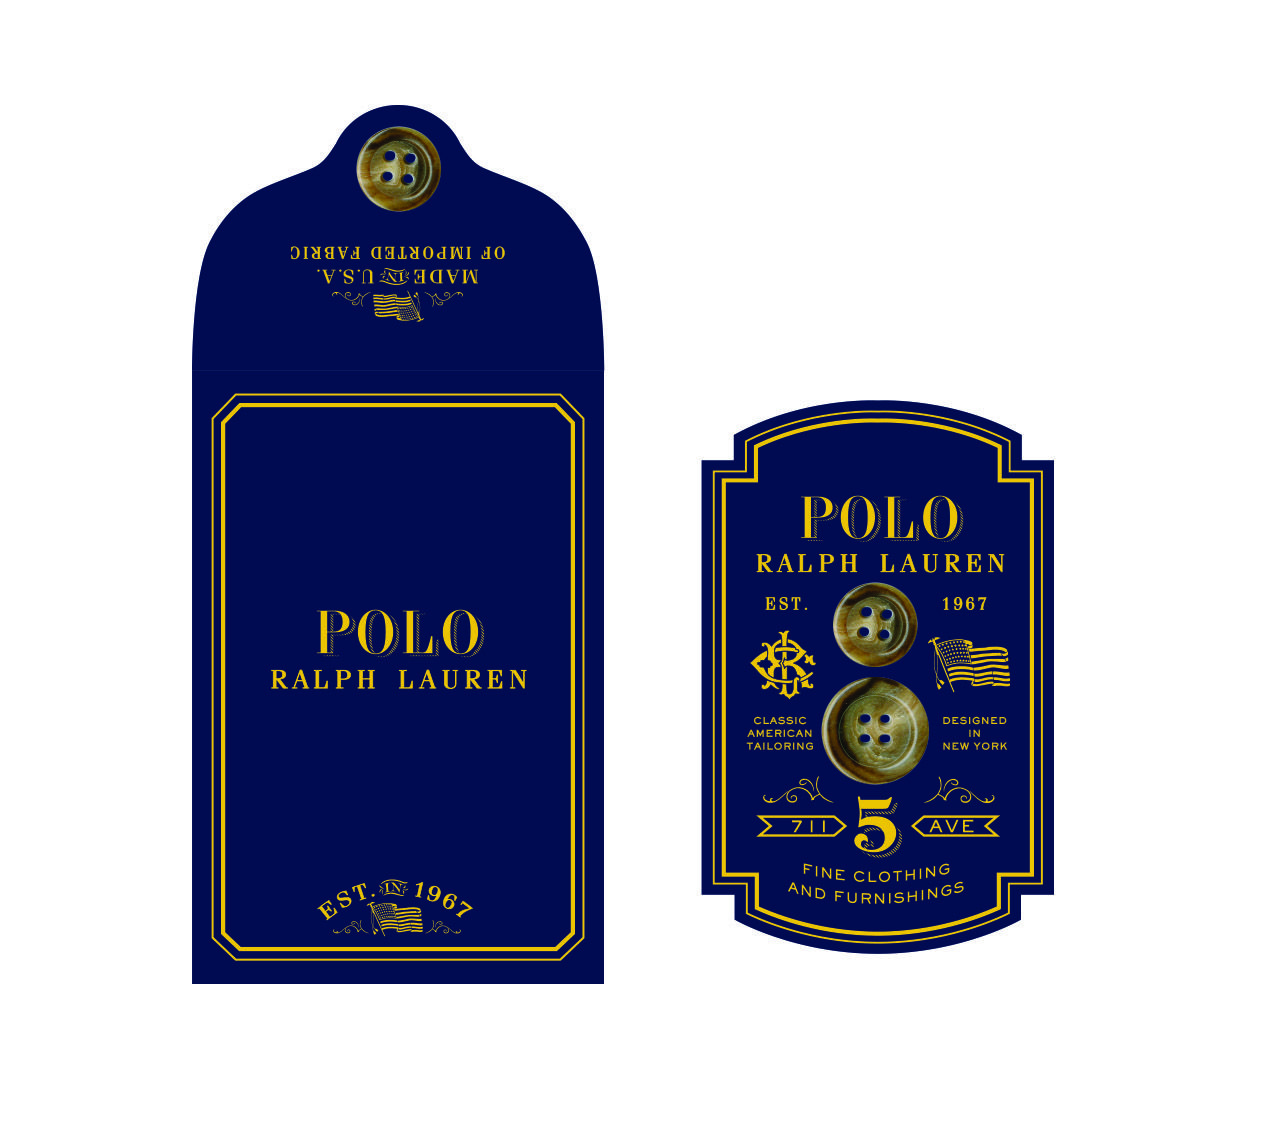 Pin by serge philip on RALPH LAUREN HANGTAGS Tag design